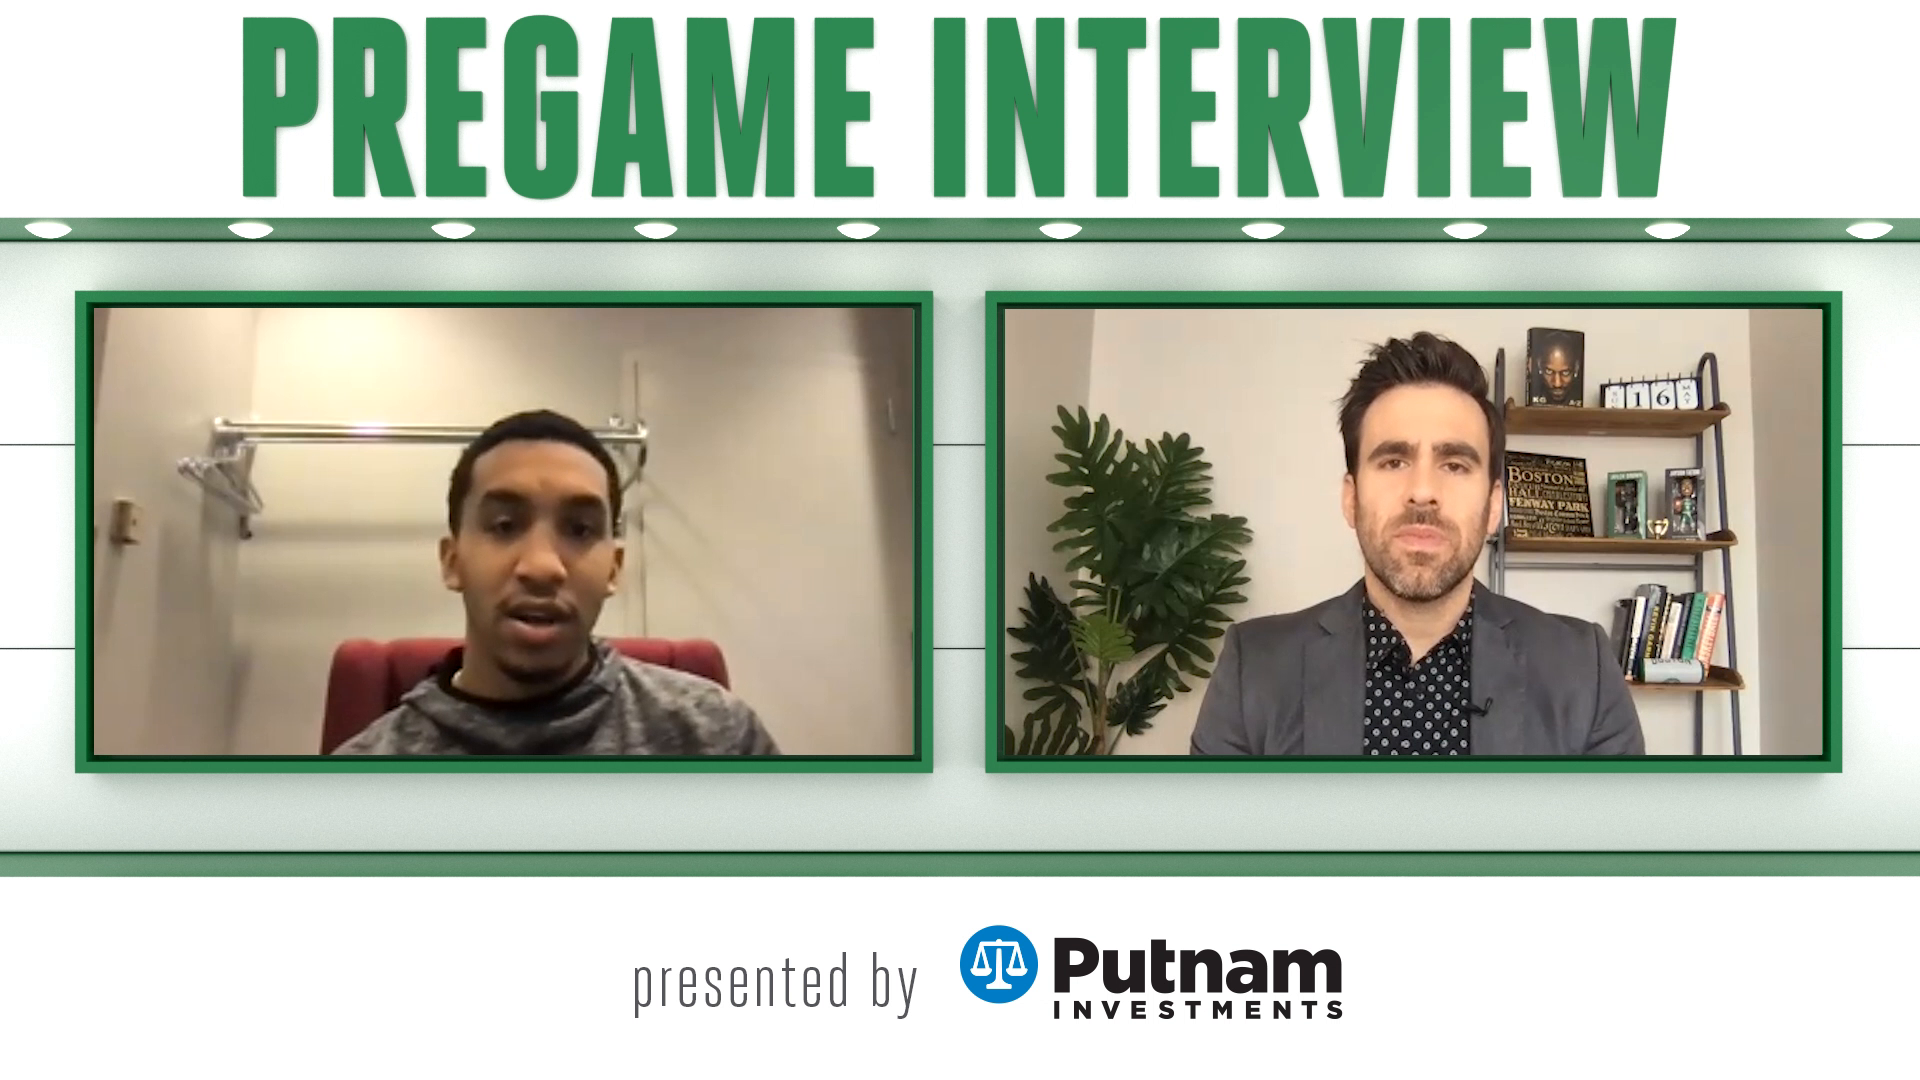 5/16 Putnam Pregame Interview: Tremont's Elite Vision